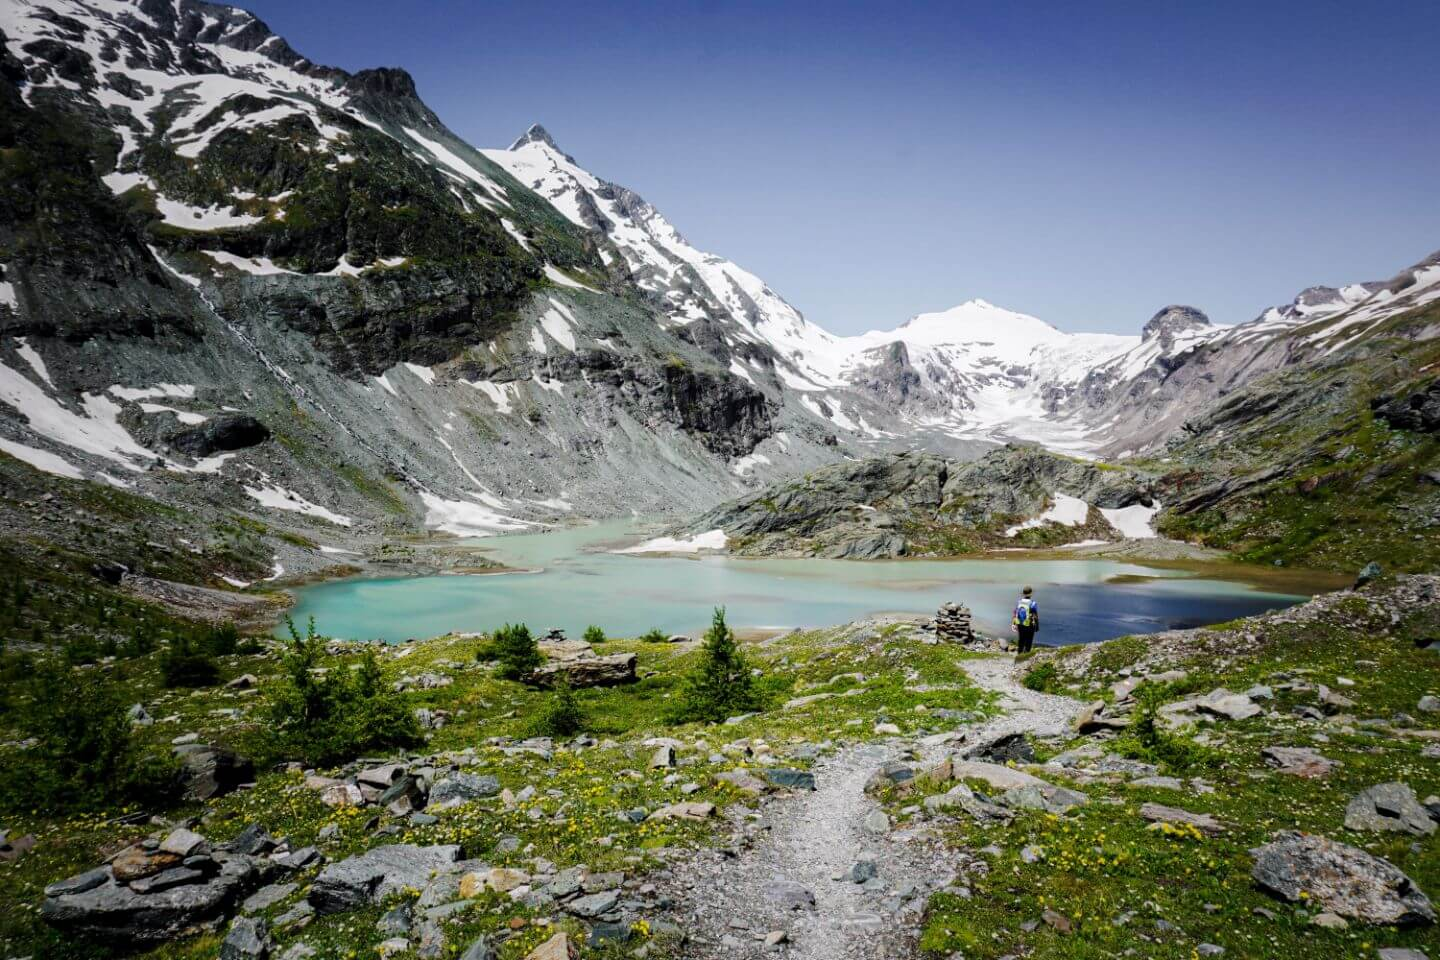 Sandersee, Hohe Tauern National Park, Austria - where to hike off Grossglockner High Alpine Road